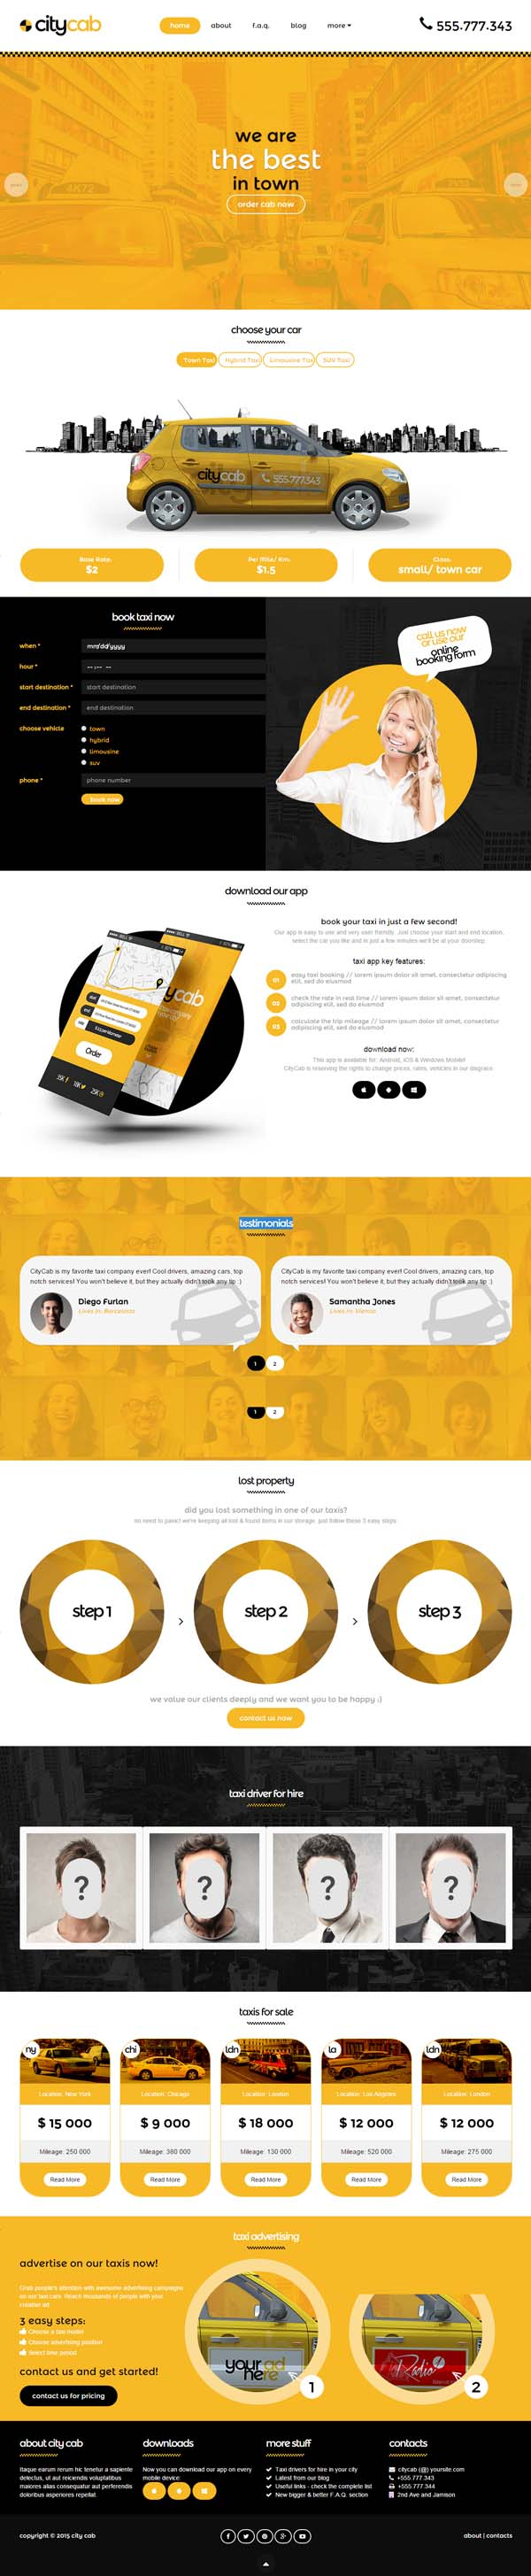 CityCab - Taxi Company Responsive HTML Template